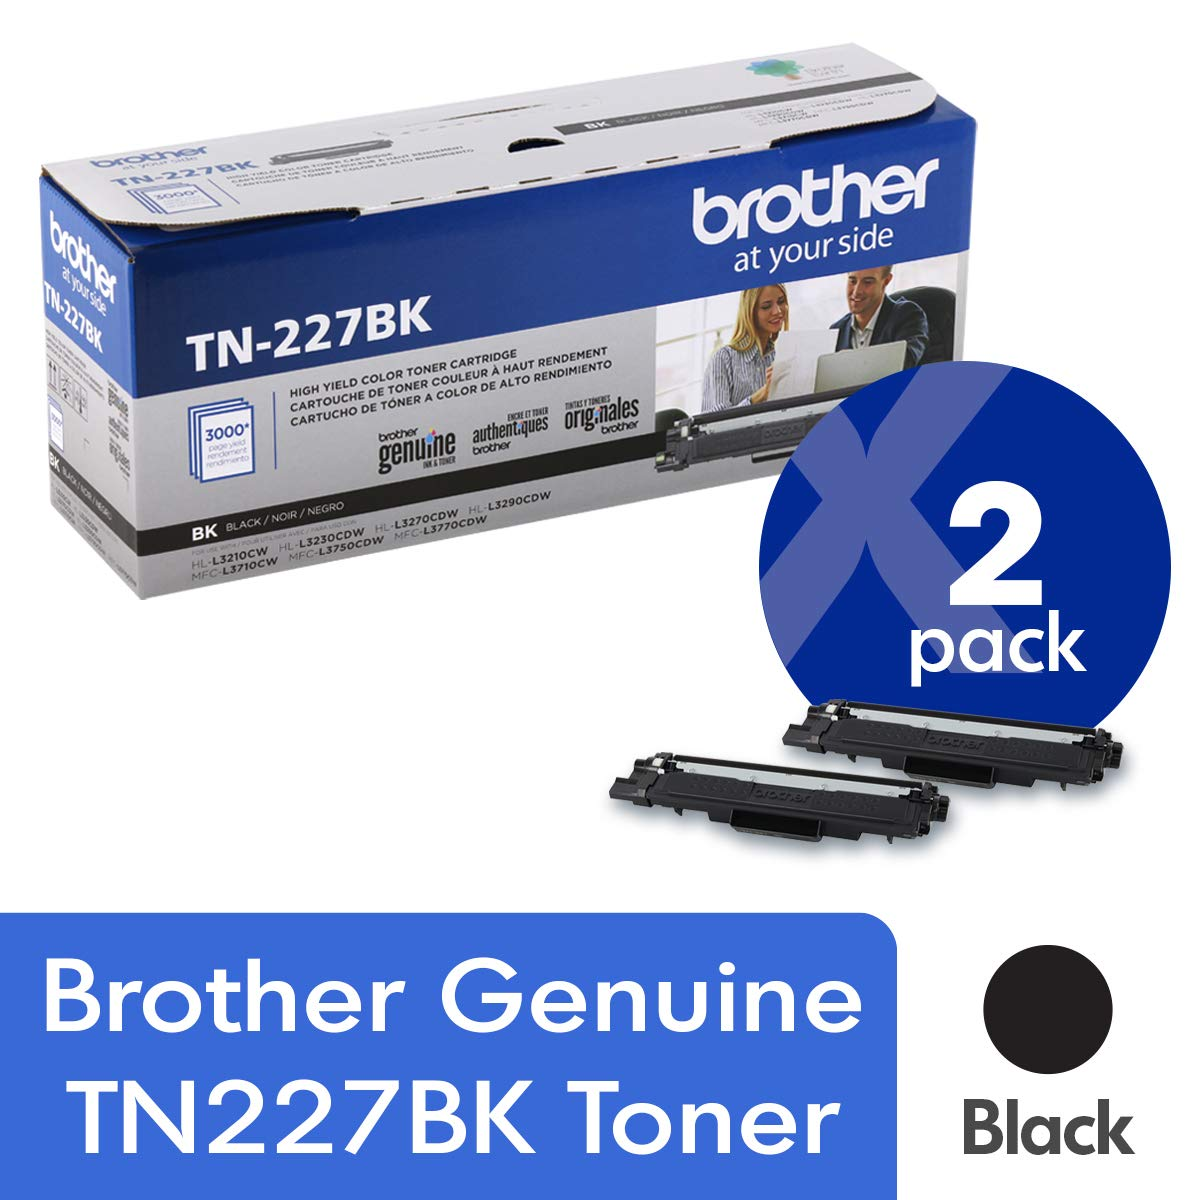 Toner Original BROTHER TN227BK 2-Pack Alta Capacidad Black con Aprox. 3,000 Páginas